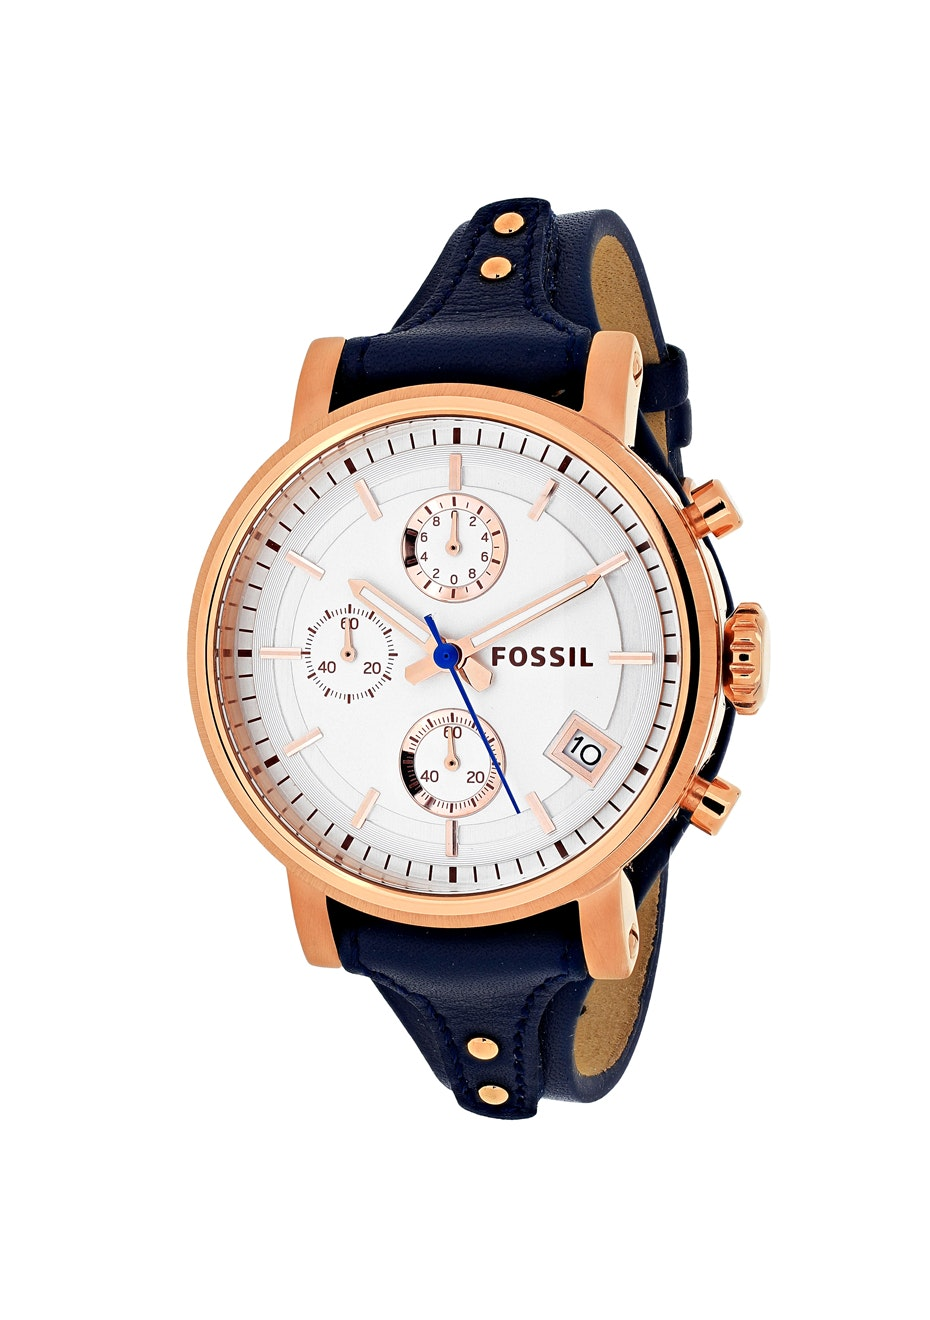 Fossil Women's Original Boyfriend - Silver/Navy blue